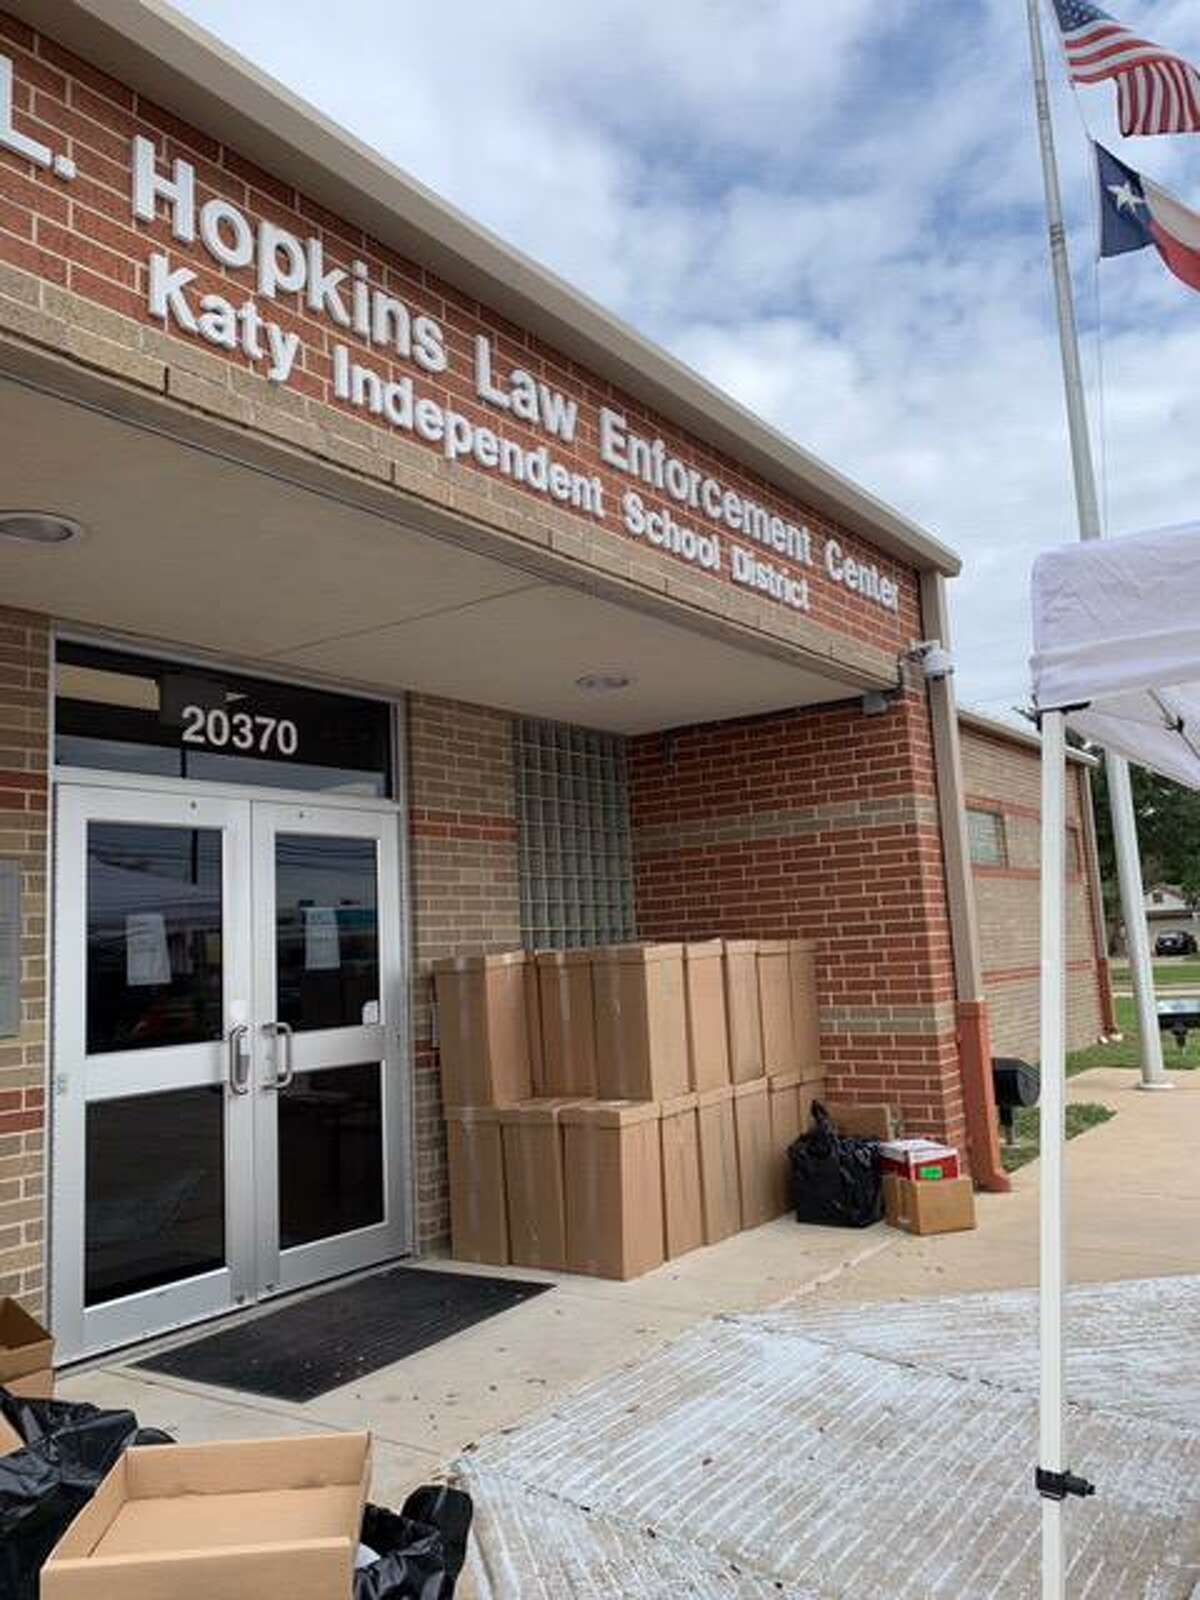 During the 19th Annual National Prescription Drug Take Back event at the Mark L. Hopkins Law Enforcement Center on Saturday, Oct. 24, the Katy Independent School District Police Department collected 39 boxes of unused and expired prescription drugs to be destroyed so they would not pose a health risk.